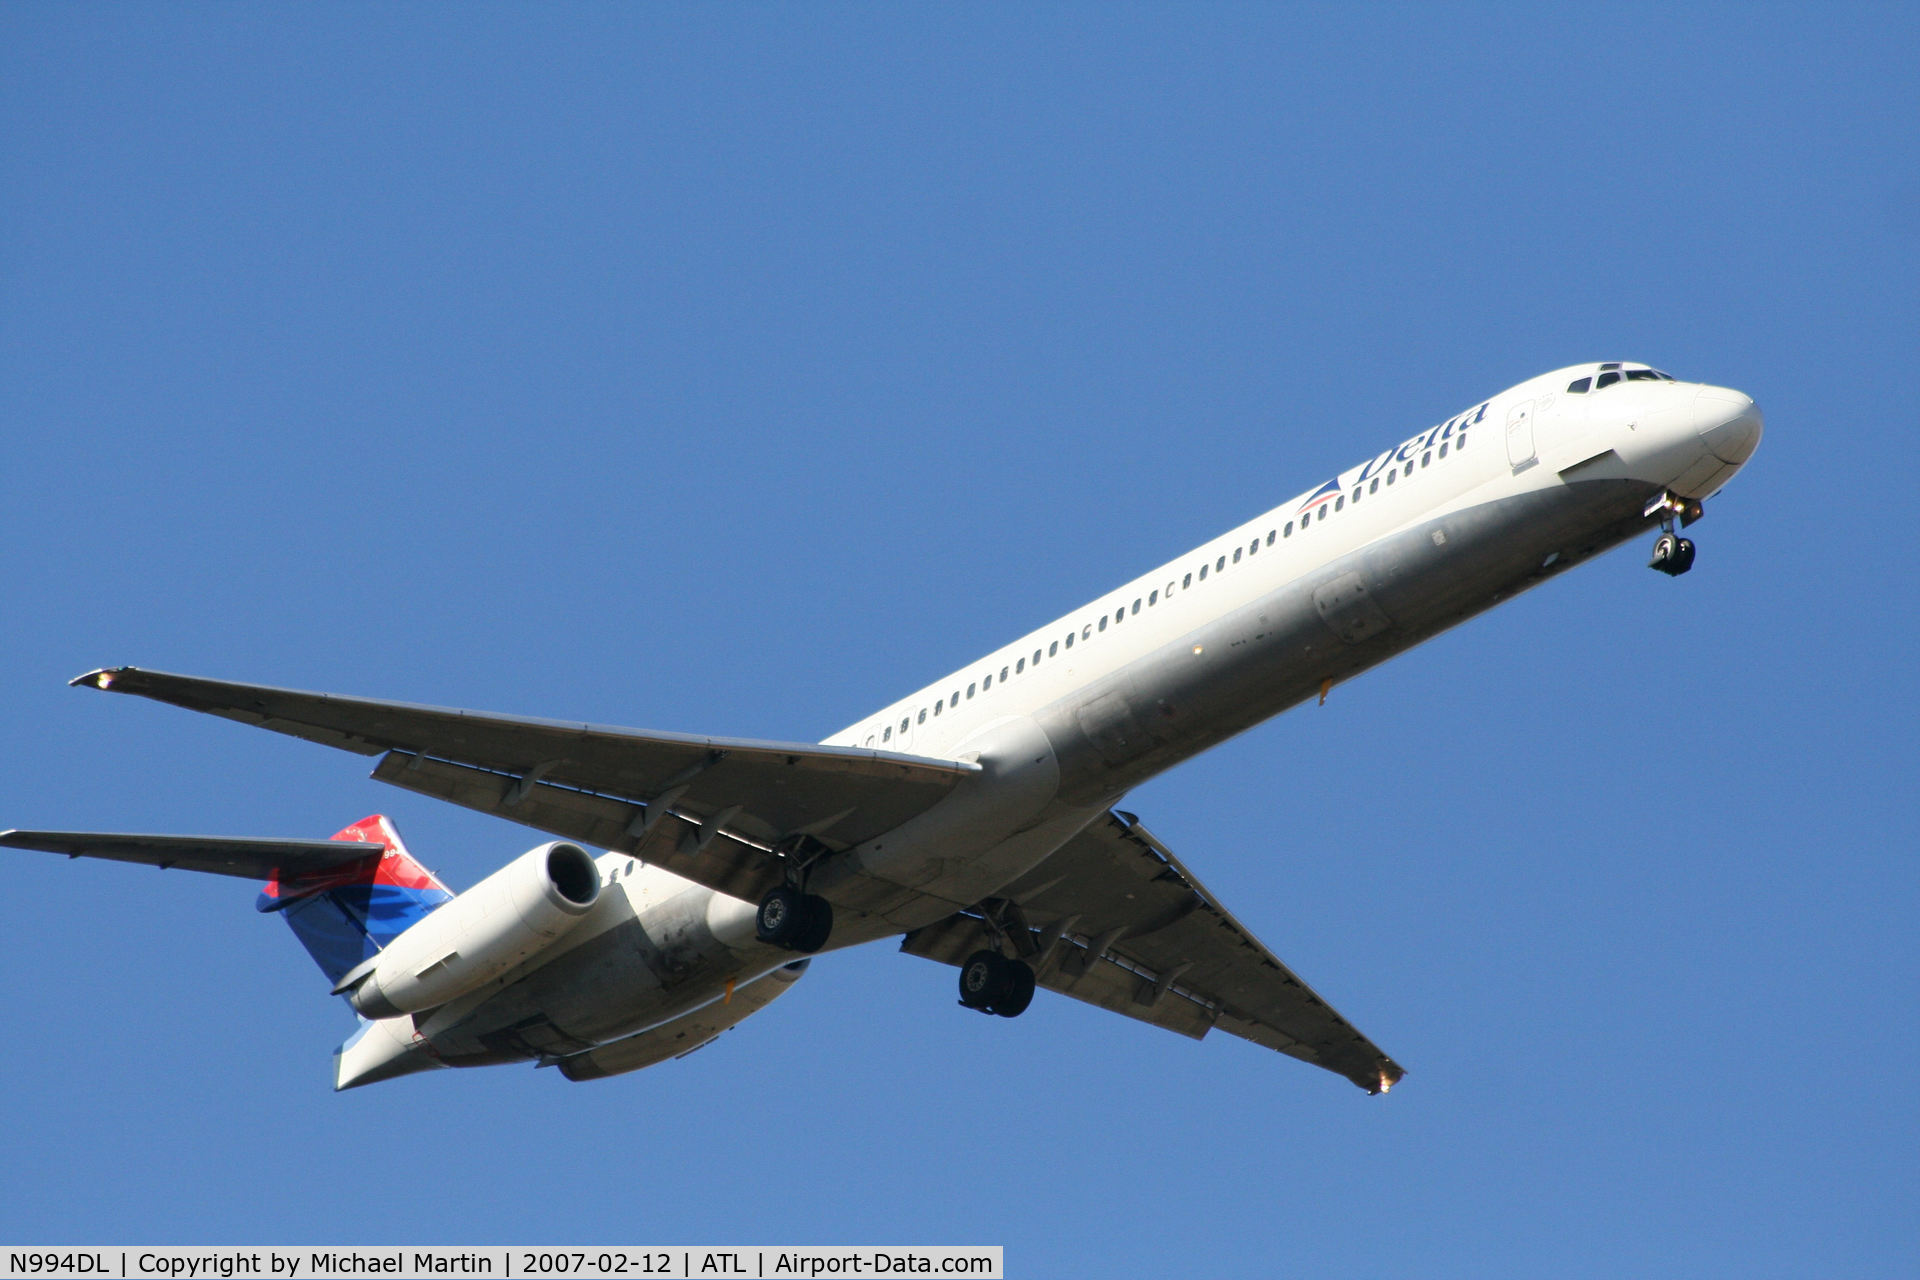 N994DL, 1991 McDonnell Douglas MD-88 C/N 53346, On final for Runway 9R